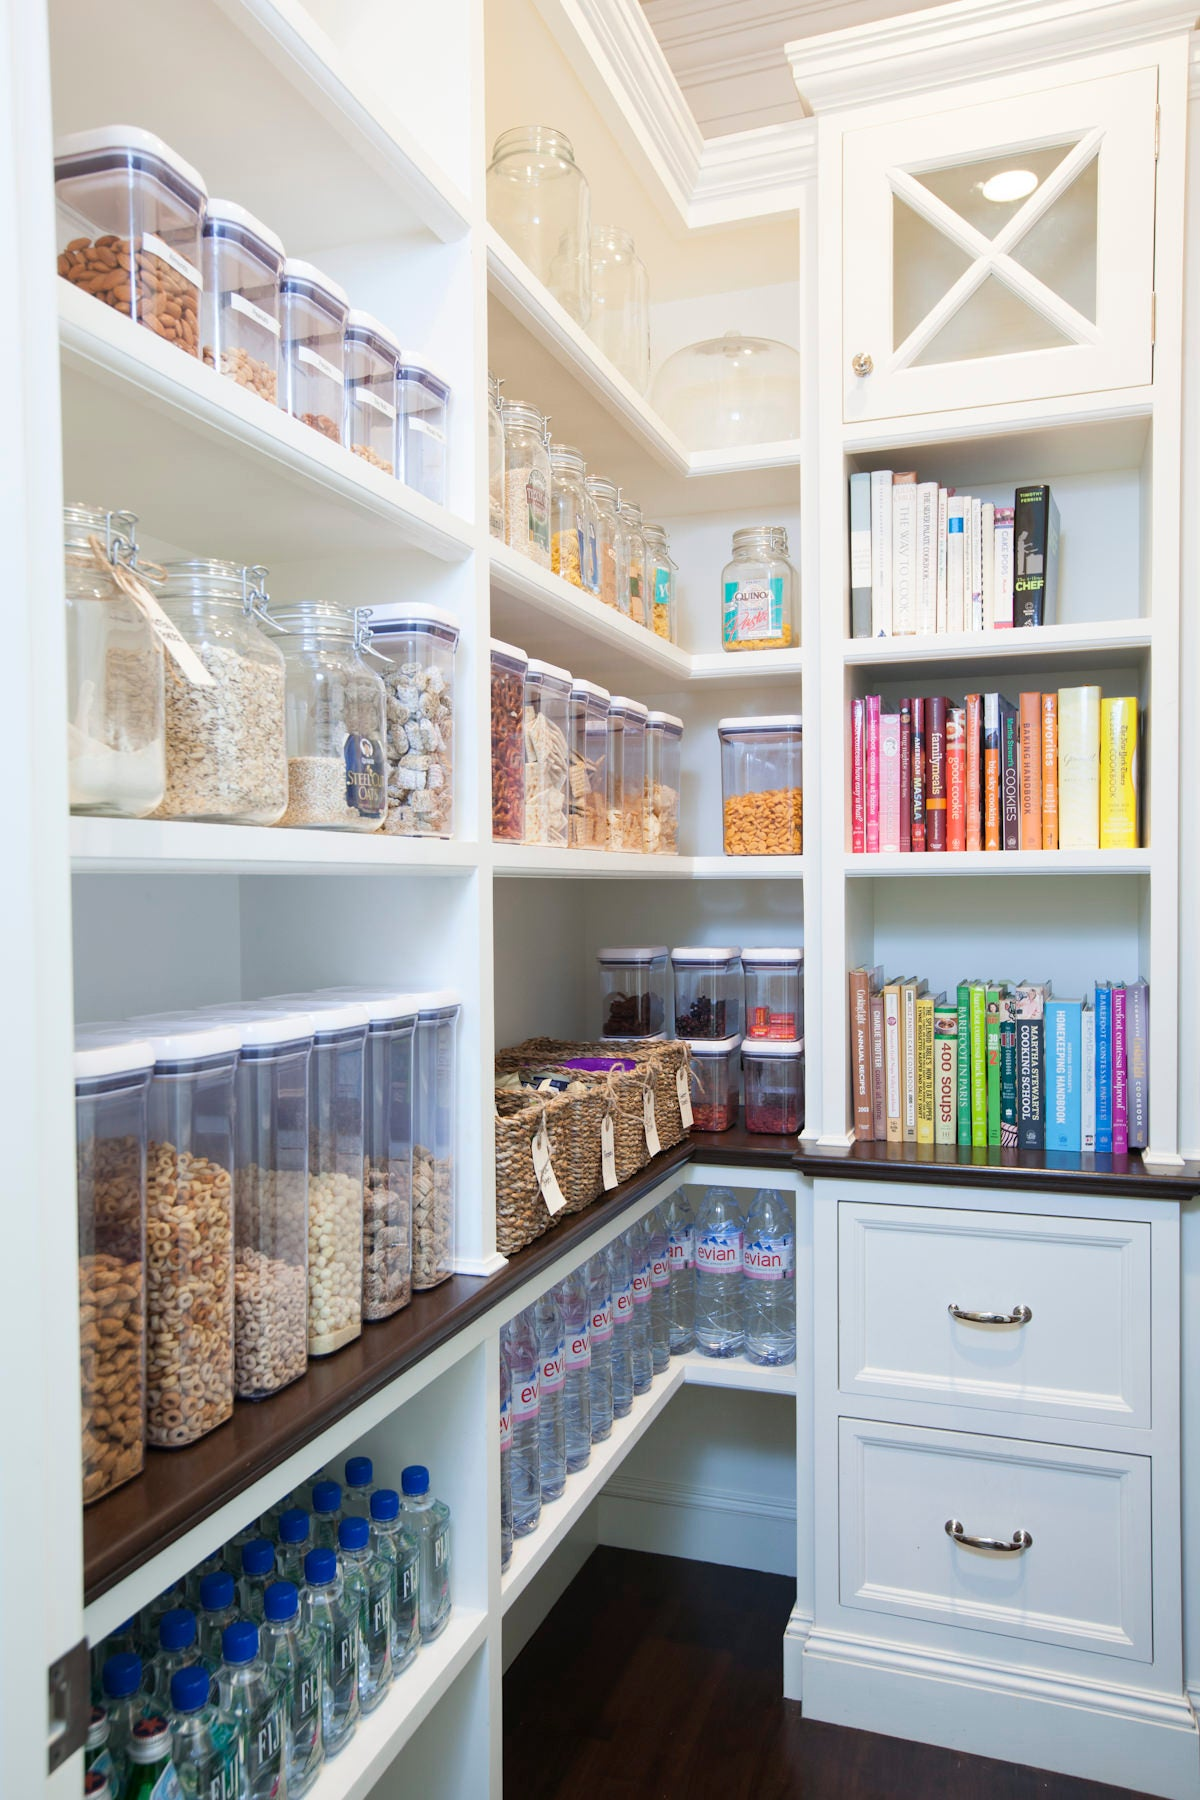 NEAT Method, professional organizer, new business, las vegas, vegas, sin city, the strip, poker, home organizing, organizer, professional organizer, Melanie Walker, home style, home decor, home design, luxury, residential, desert, pantry, alphabetized, pinterest,